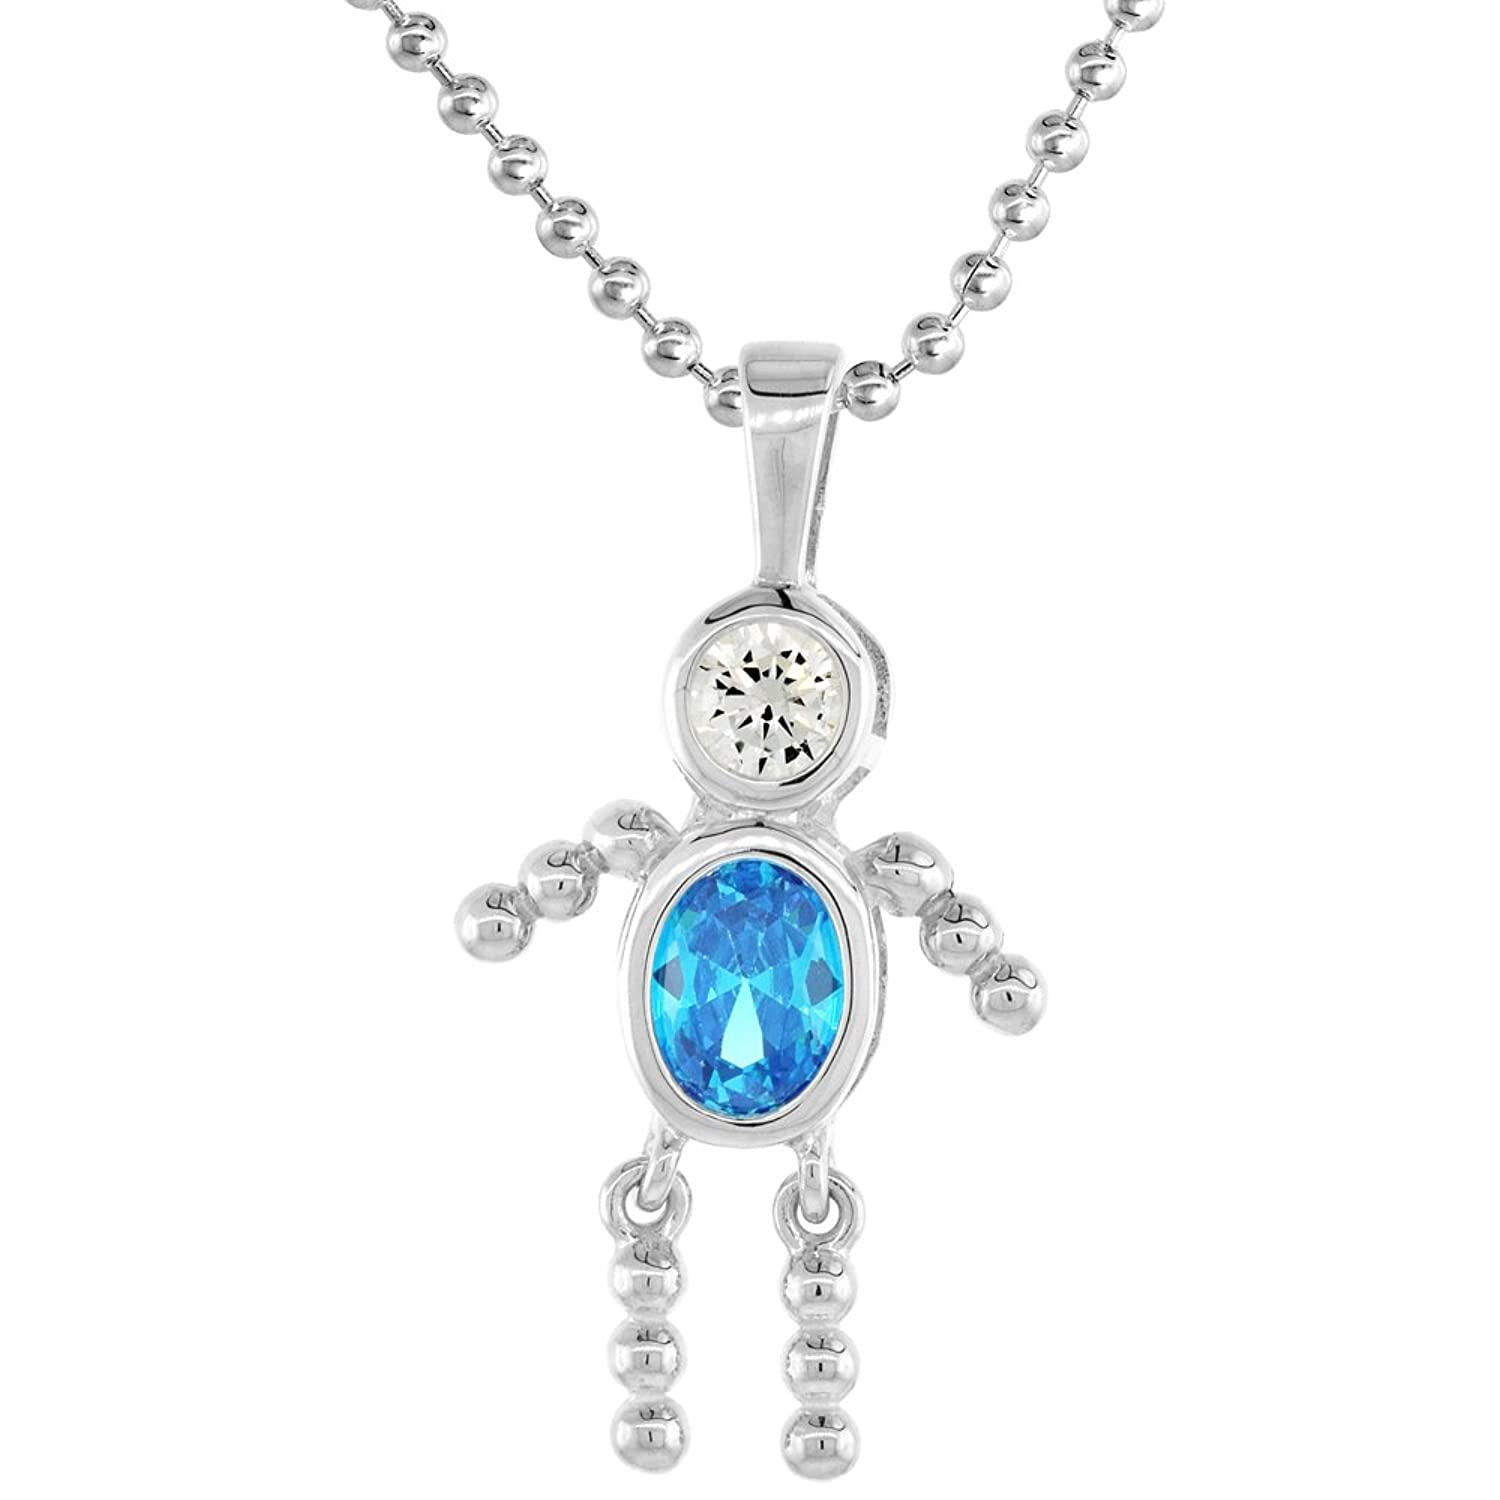 listing necklace birthstones locket charm mothers il grandkid mzon fullxfull birthstone zoom floating